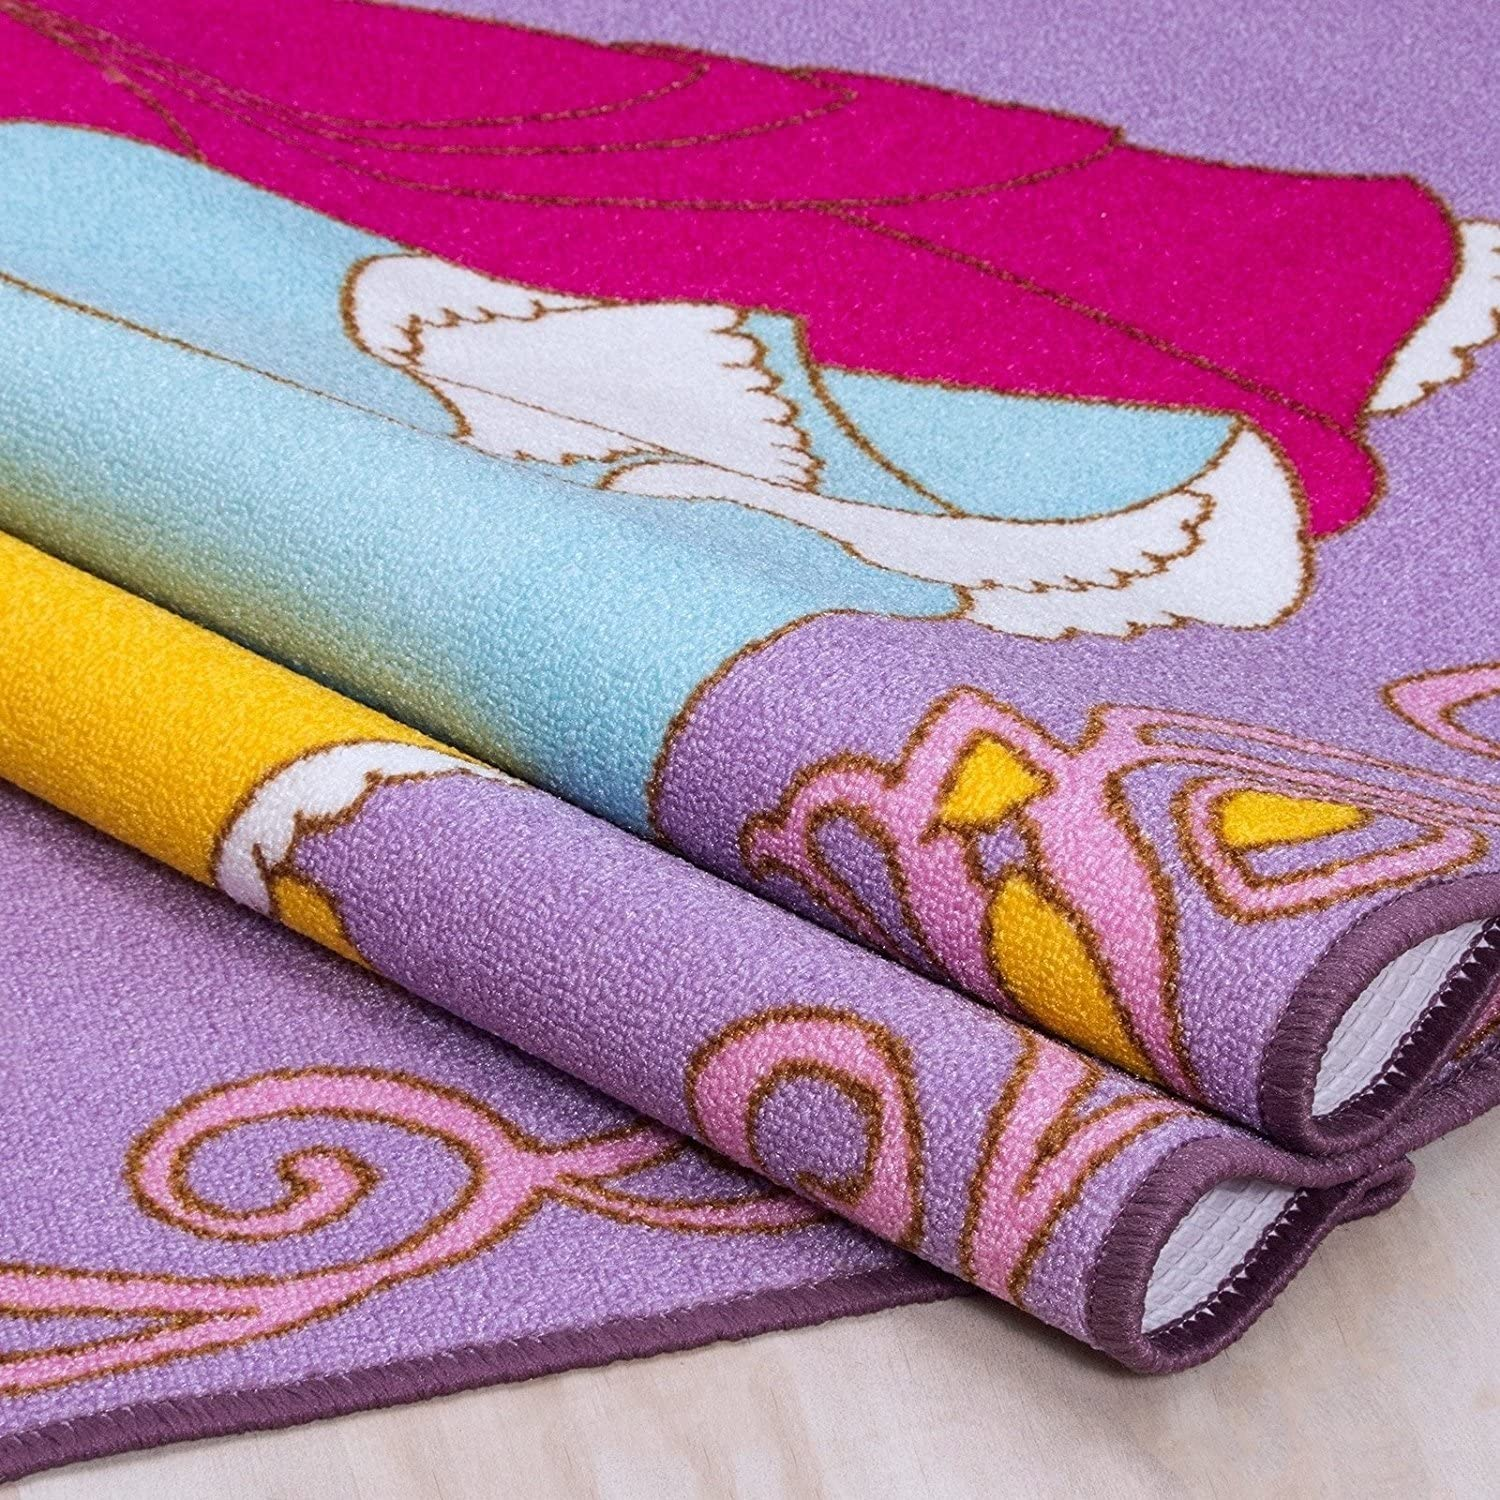 Princess Playtime Collection Fun Educational Disney Style Area Rug Girls Bedroom Carpet Play Mat Bright Colorful Vibrant Colors 3 Feet X 5 Feet